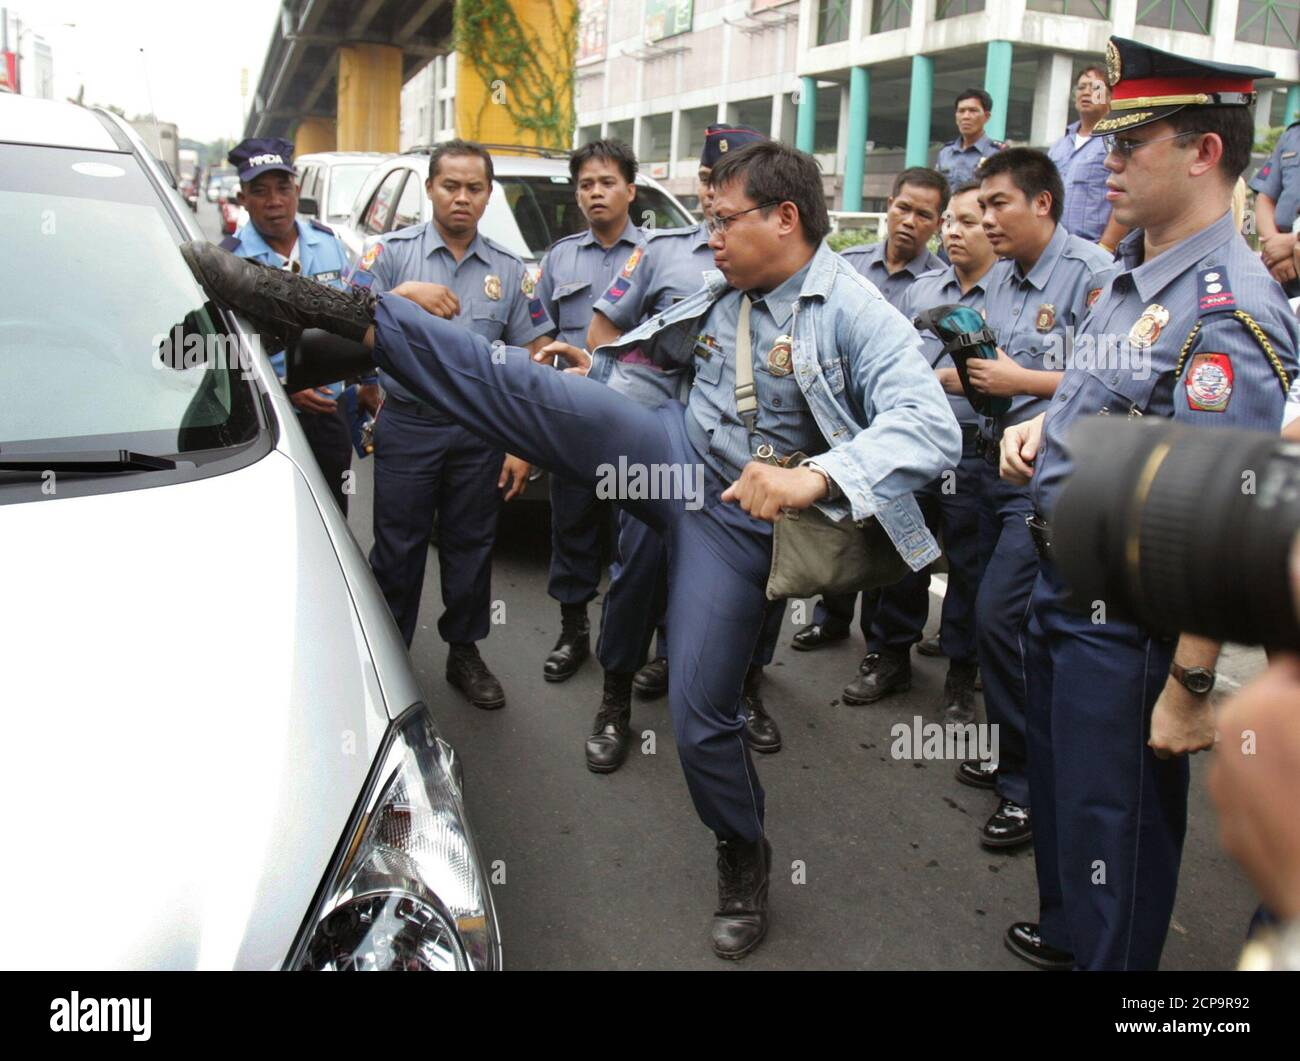 A Filipino police officer tries to kick open the window of a car whose driver had lost consciousness near the EDSA shrine in Manila.  A Filipino police officer tries to kick open the window of a car whose driver had lost consciousness near the EDSA (Epifanio de los Santos Avenue) shrine in Manila July 23, 2005. Police had converged at the shrine, the site of the 1986 and 2000 People Power uprising, to monitor an anti-Arroyo march. REUTERS/Adrees Latif Stock Photo